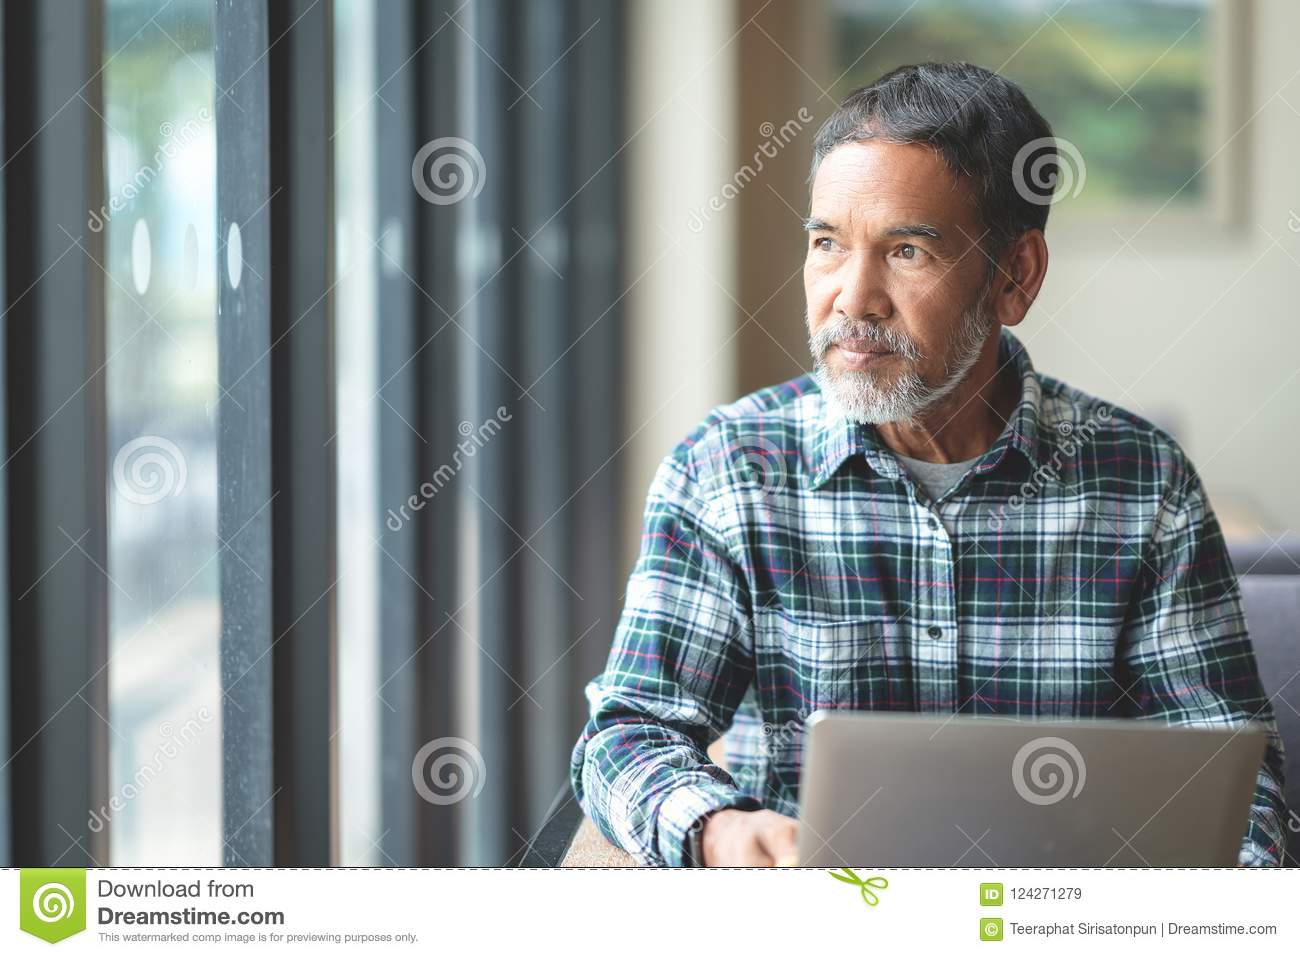 Mature man with white stylish short beard looking outside window. Casual lifestyle of retired hispanic people